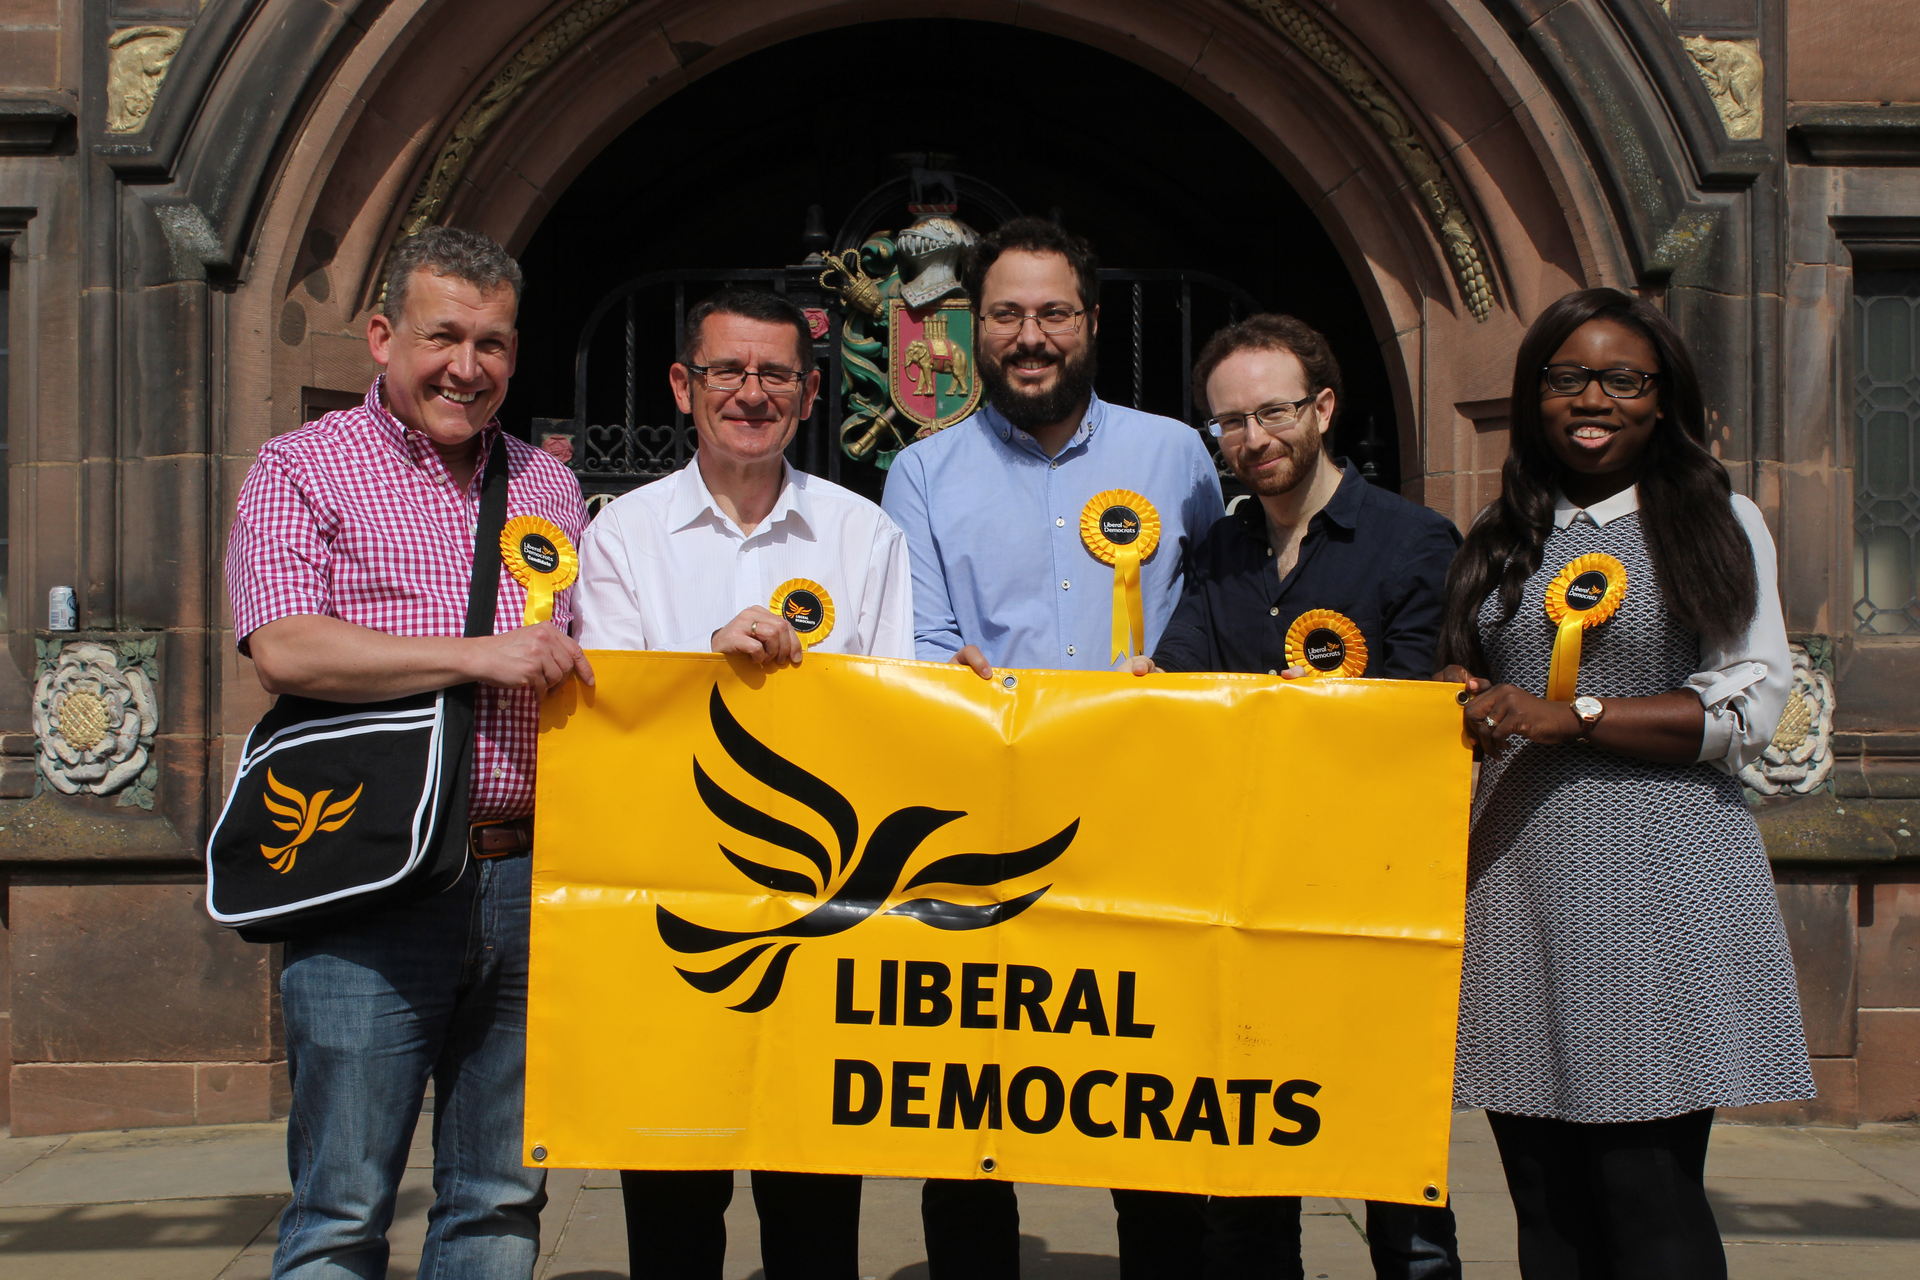 Coventry Lib Dems outside Coventry Council House